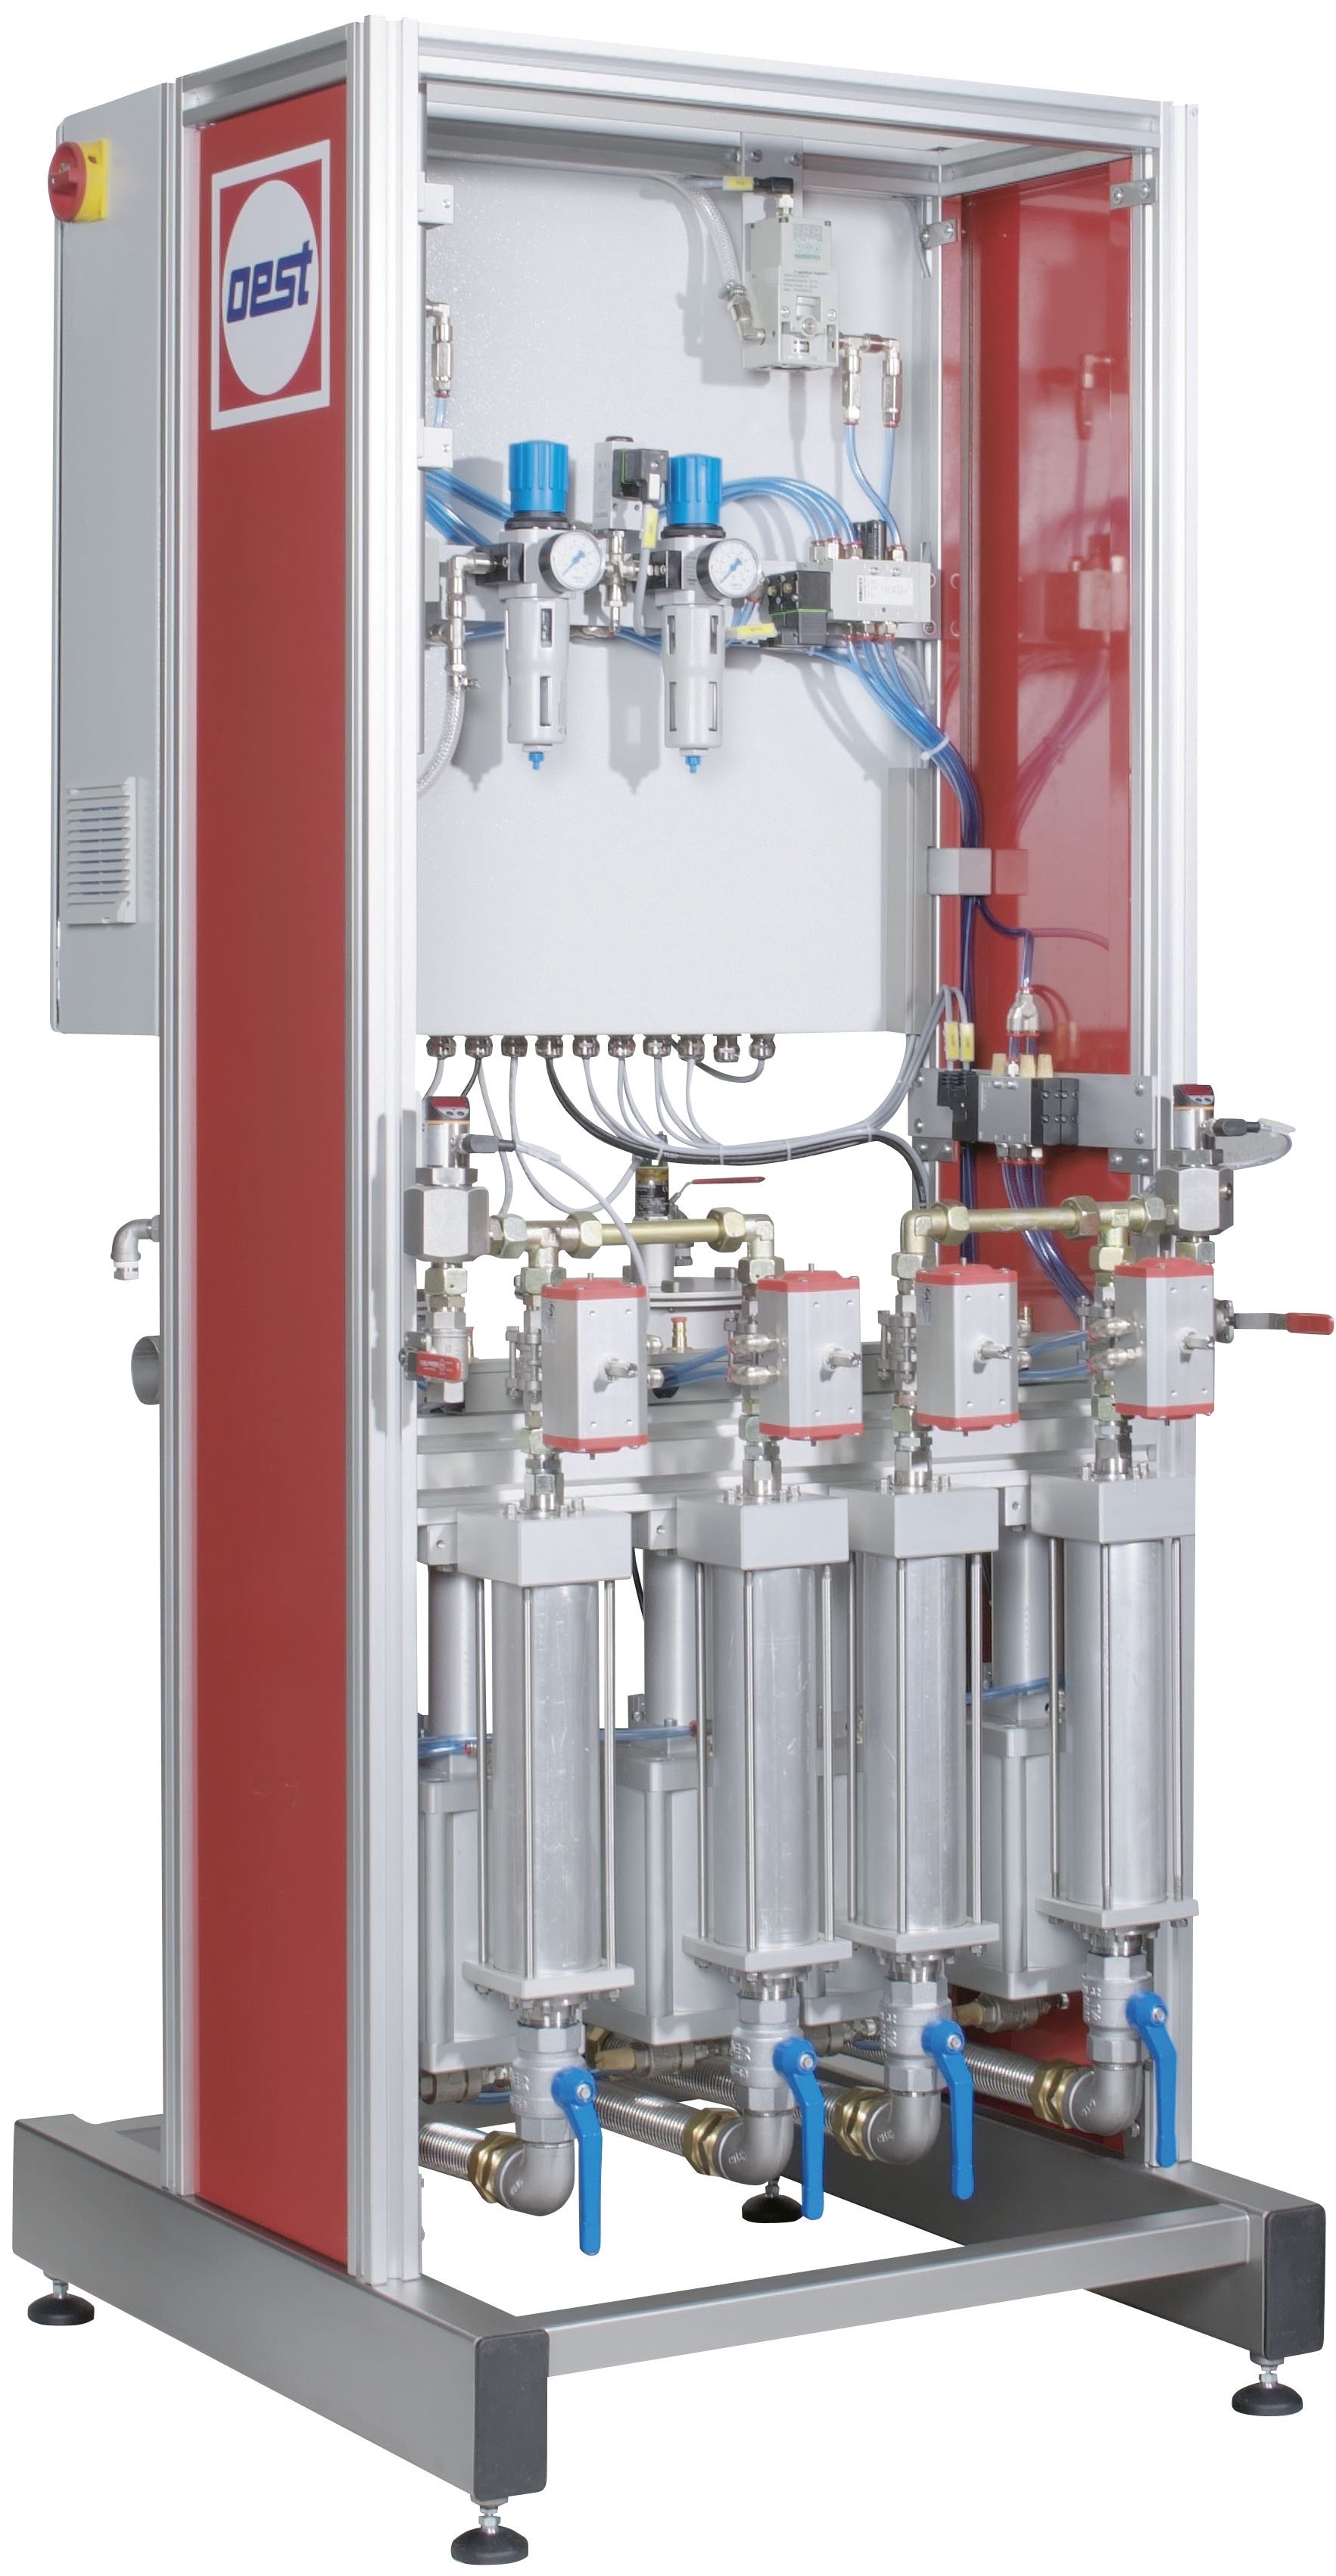 Dosing, mixing and application system for two-component adhesives